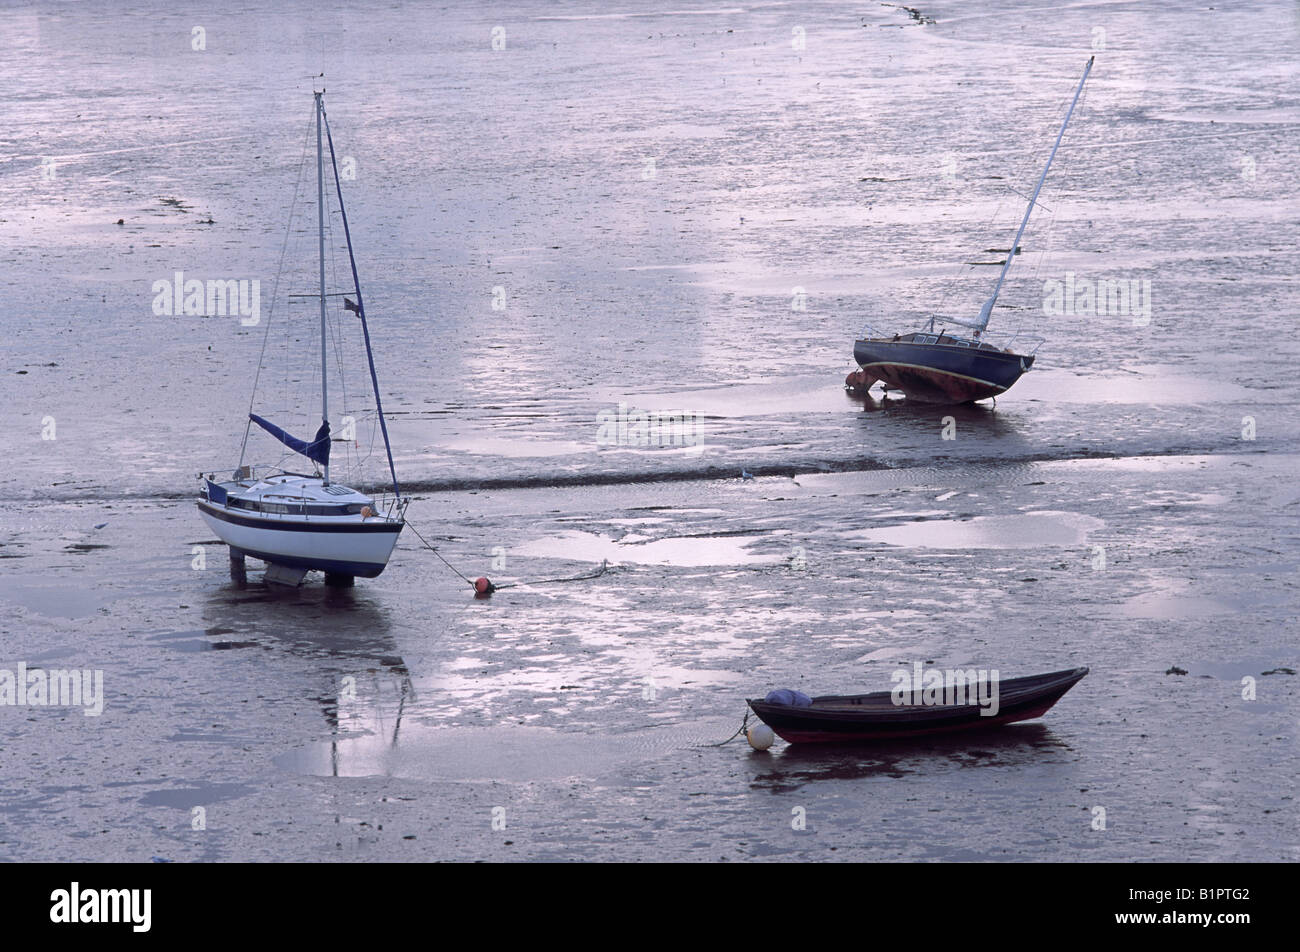 Early Evening with Two Yachts and a Dinghy at Low Tide on the Exe Estuary - Stock Image